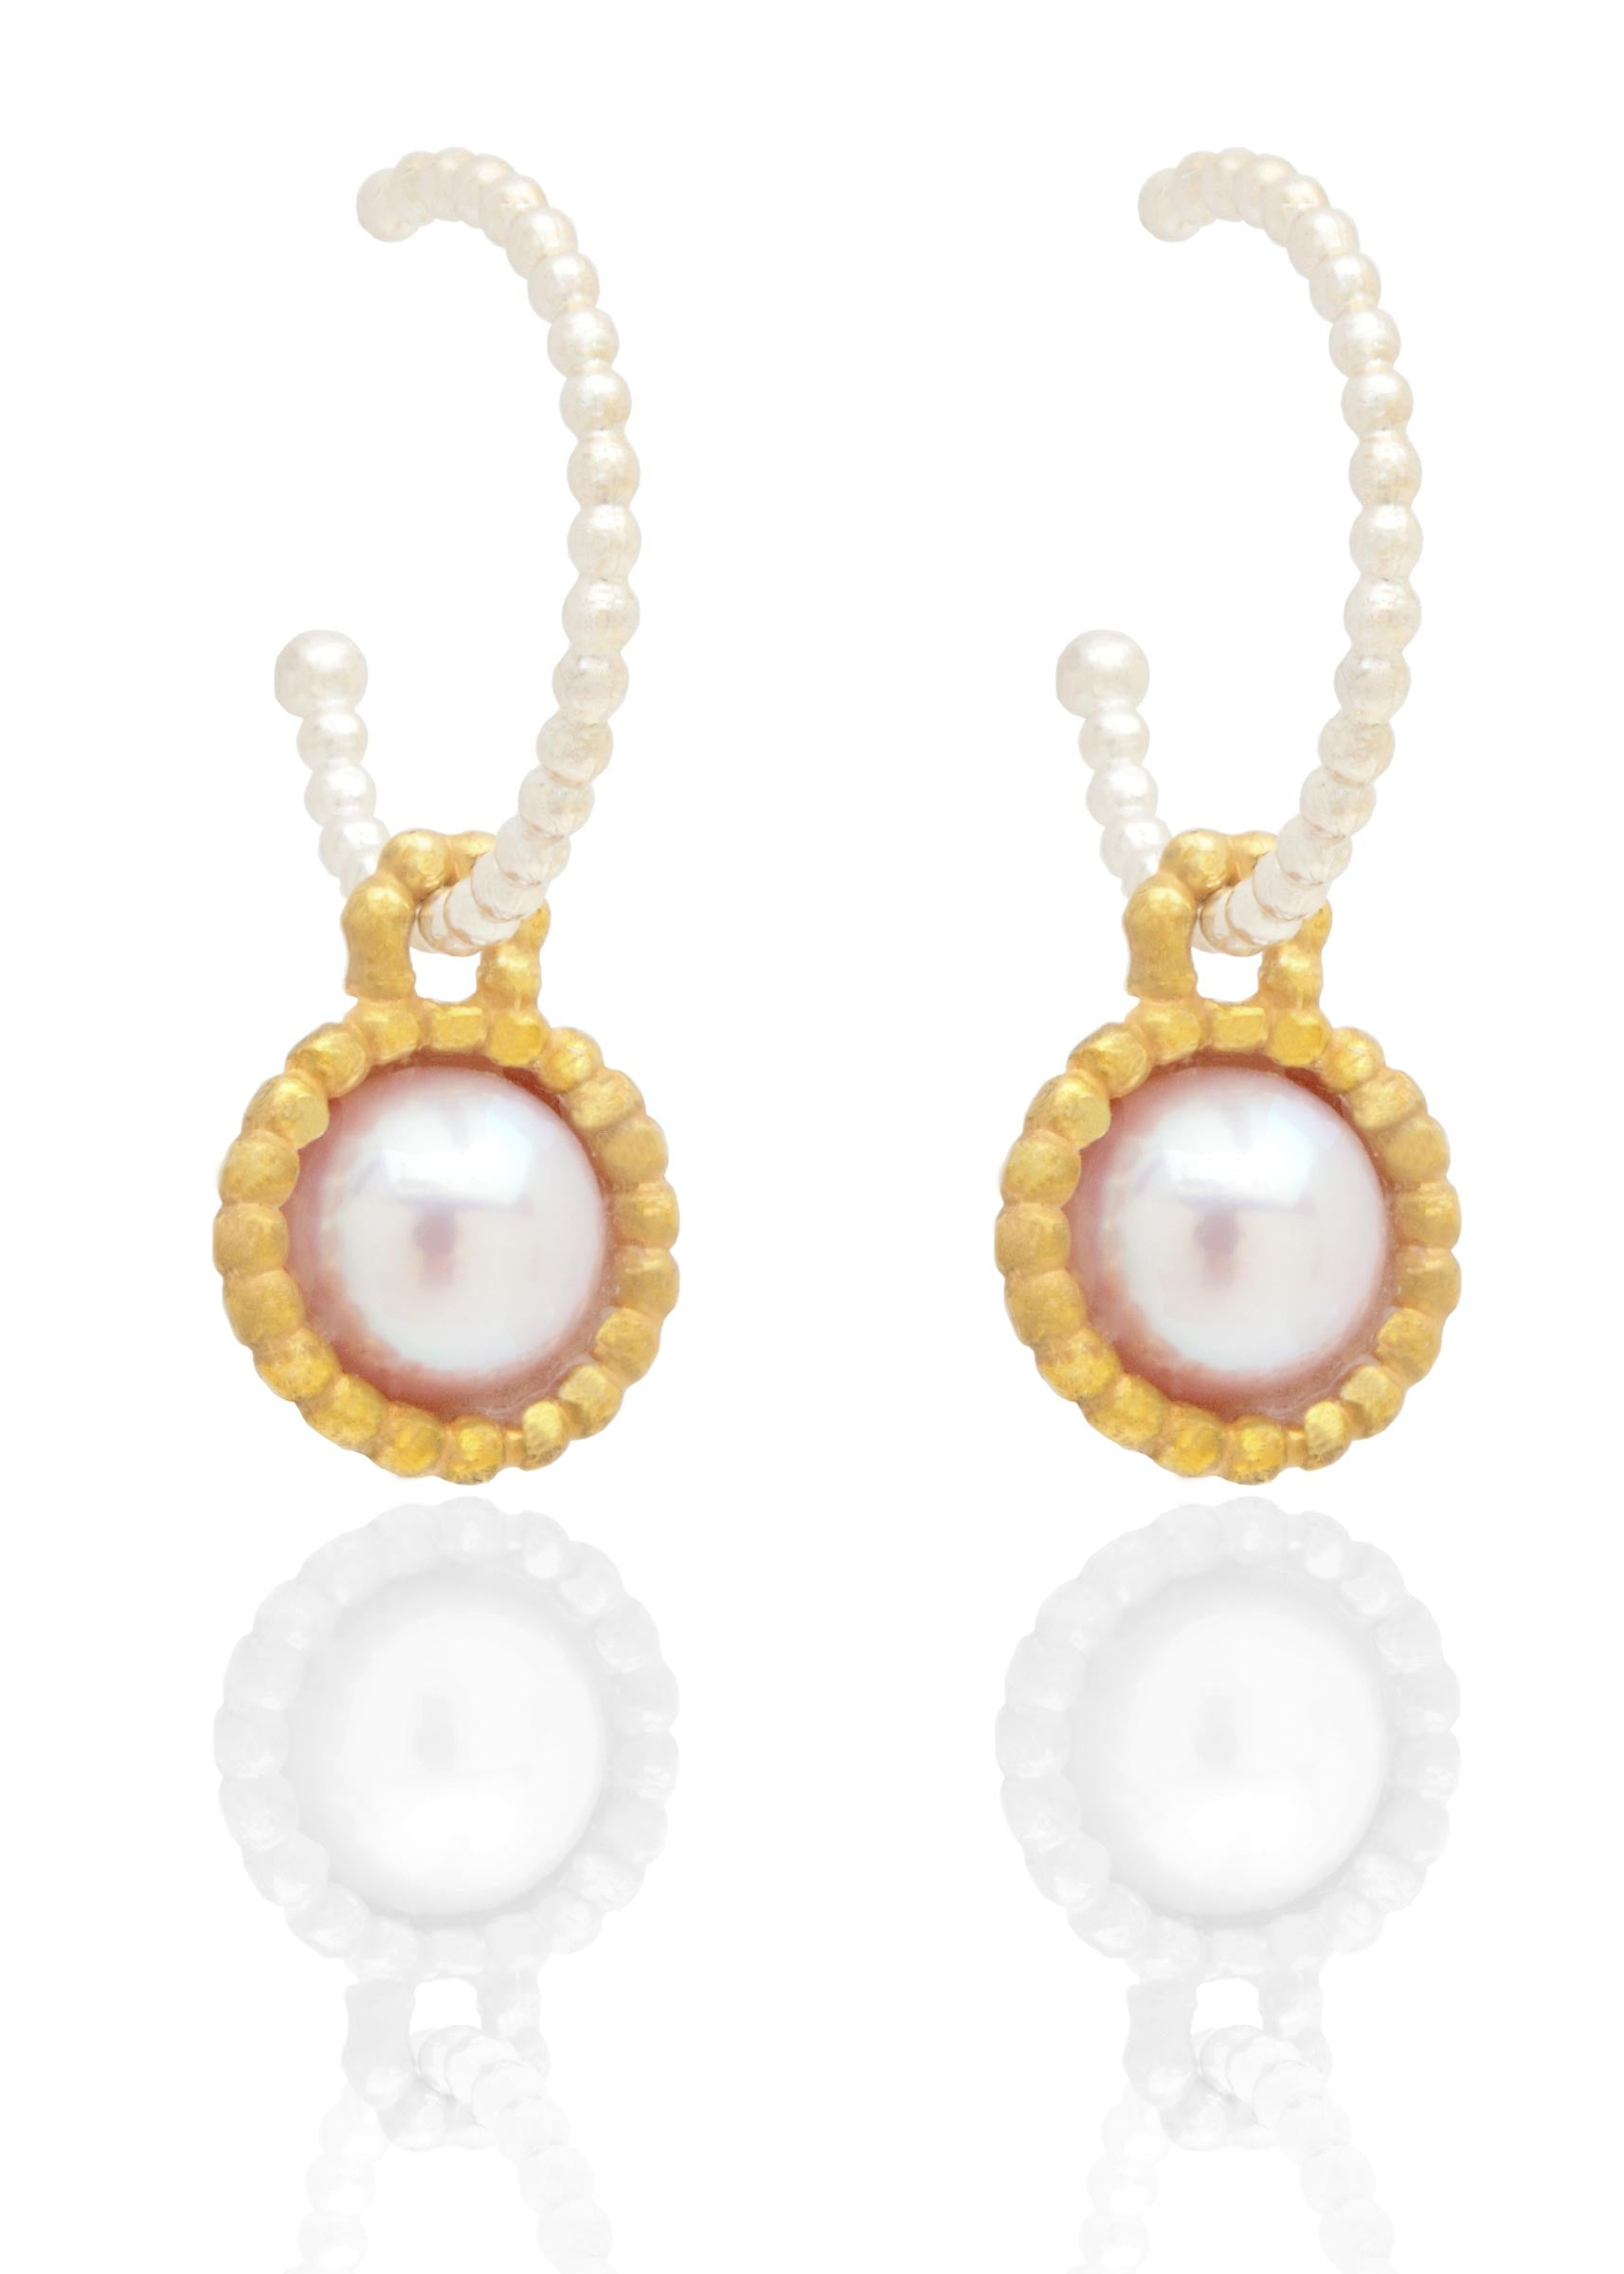 Byzantine hooped earrings with pearl drop pendant